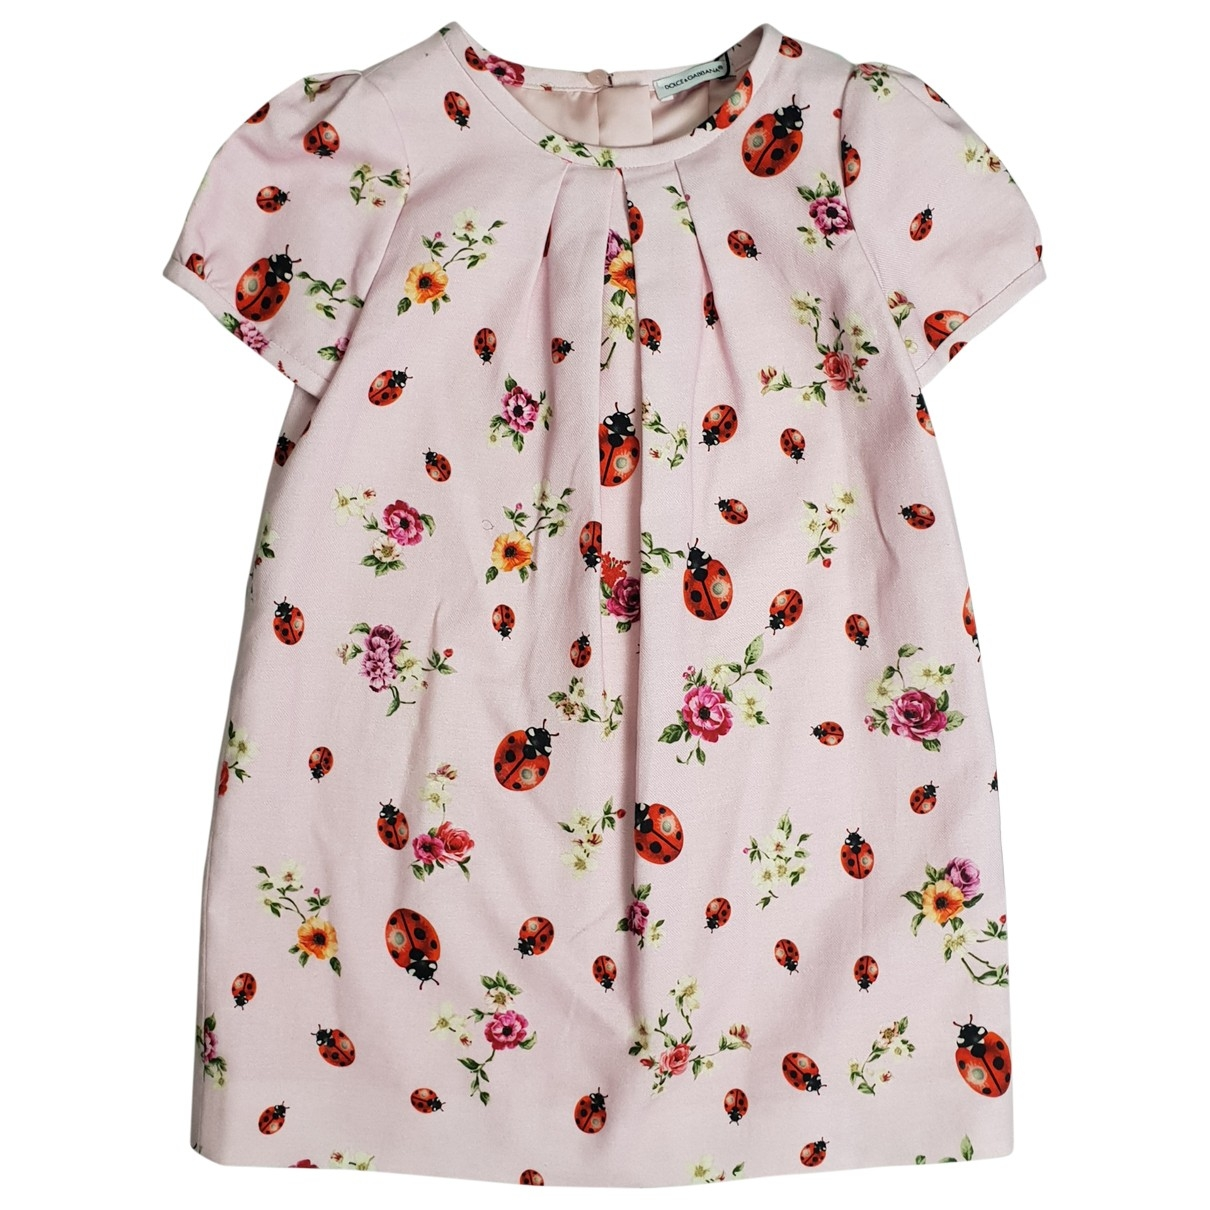 Dolce & Gabbana \N Pink Cotton dress for Kids 3 years - up to 98cm FR